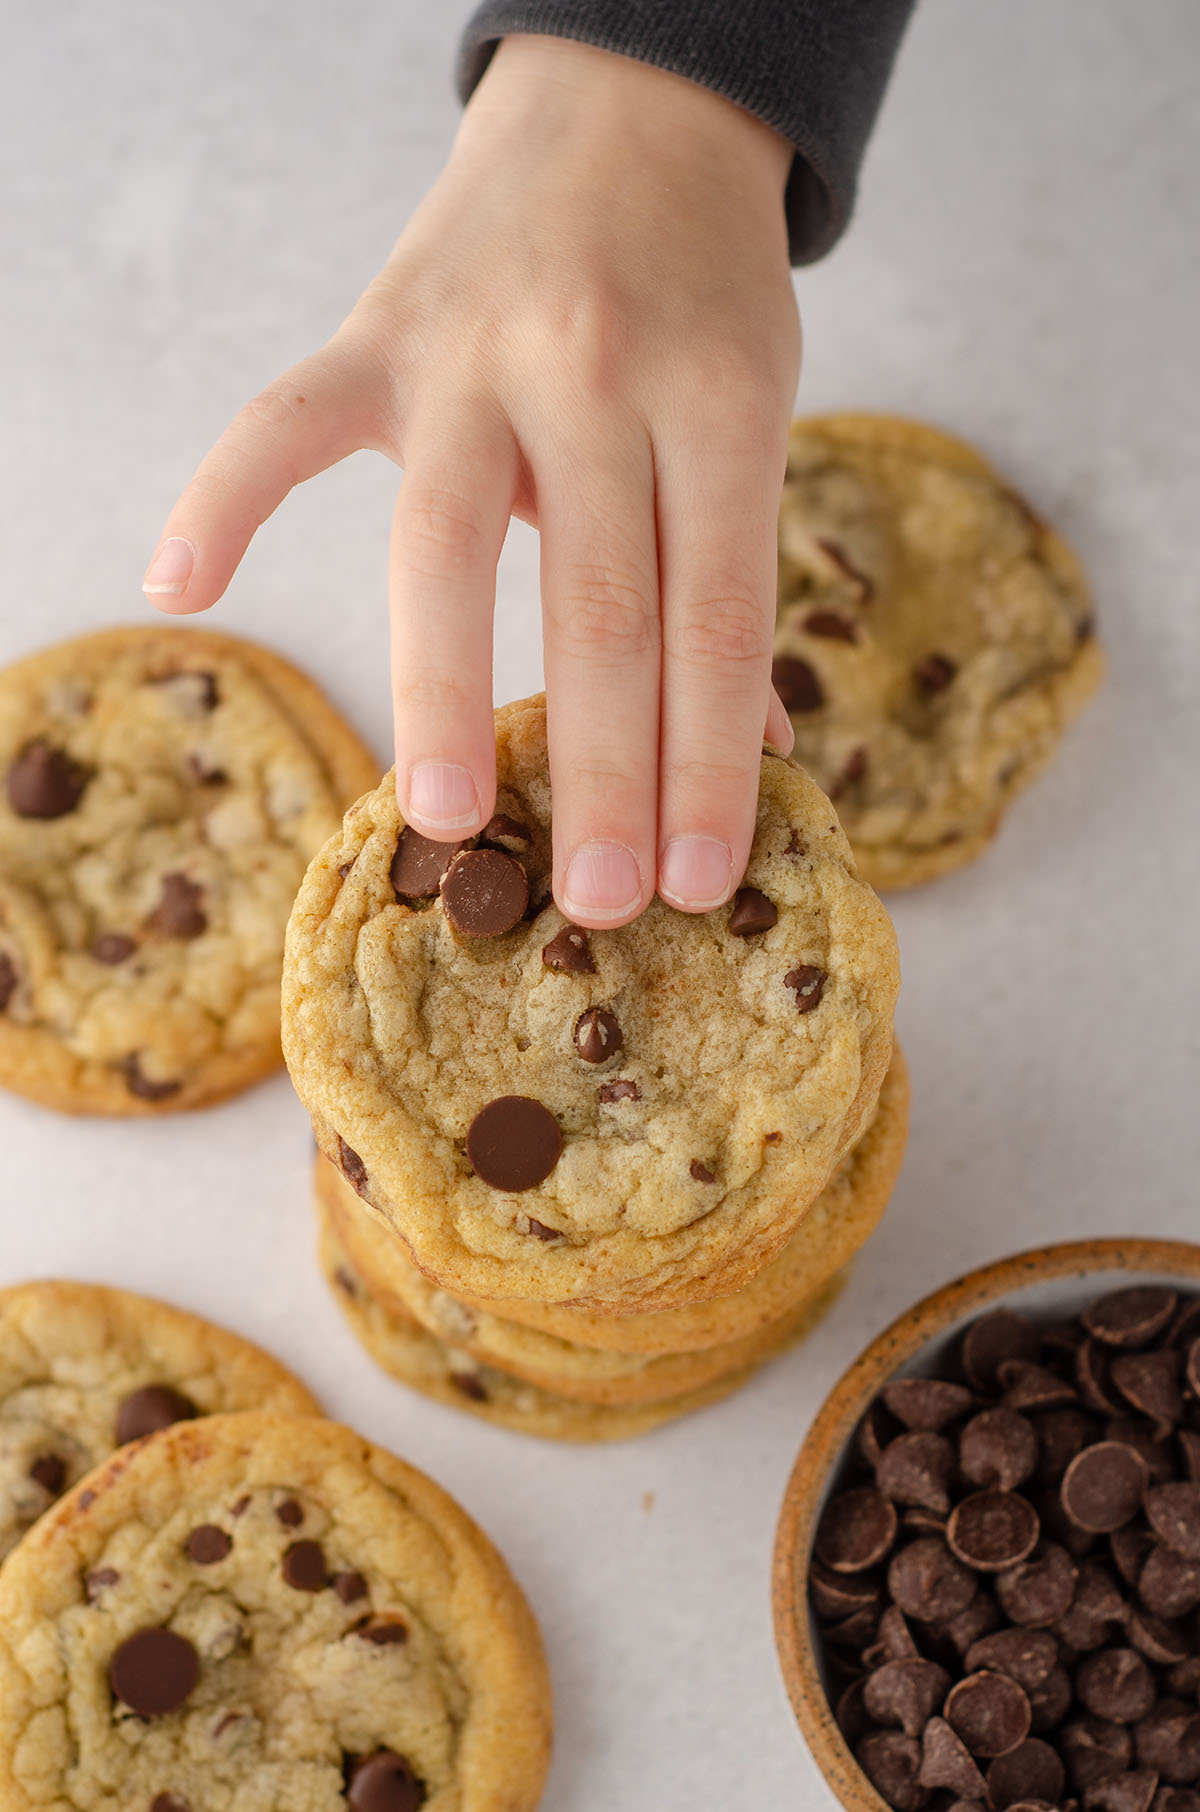 aerial photo of toddler hand reaching to grab a chocolate chip cookies